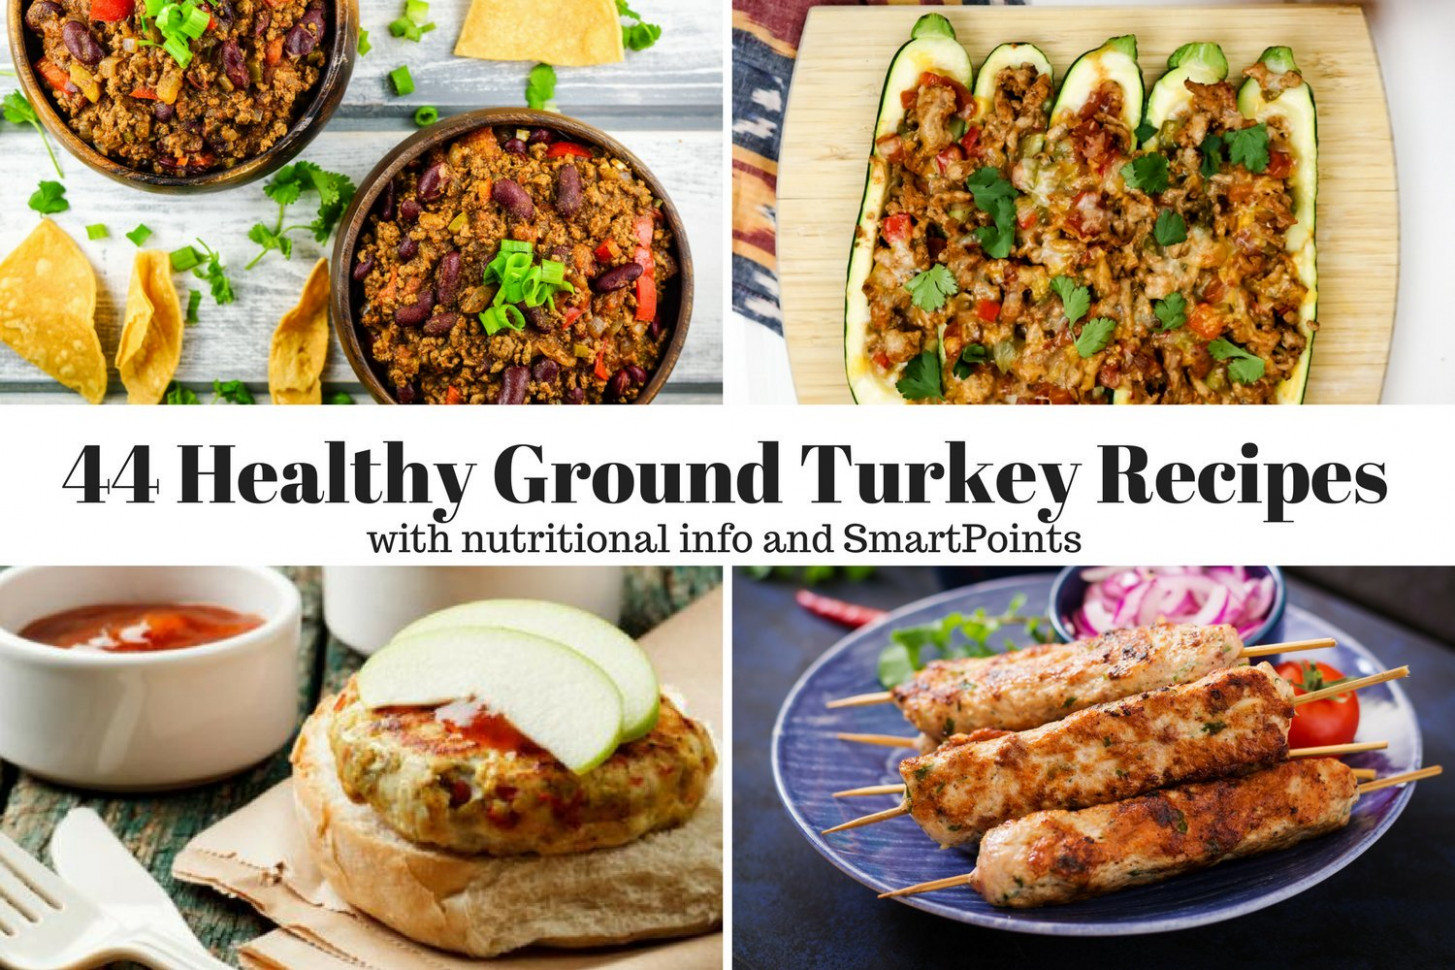 Forty Four Healthy Ground Turkey Recipes - Slender Kitchen - healthy recipes with ground turkey